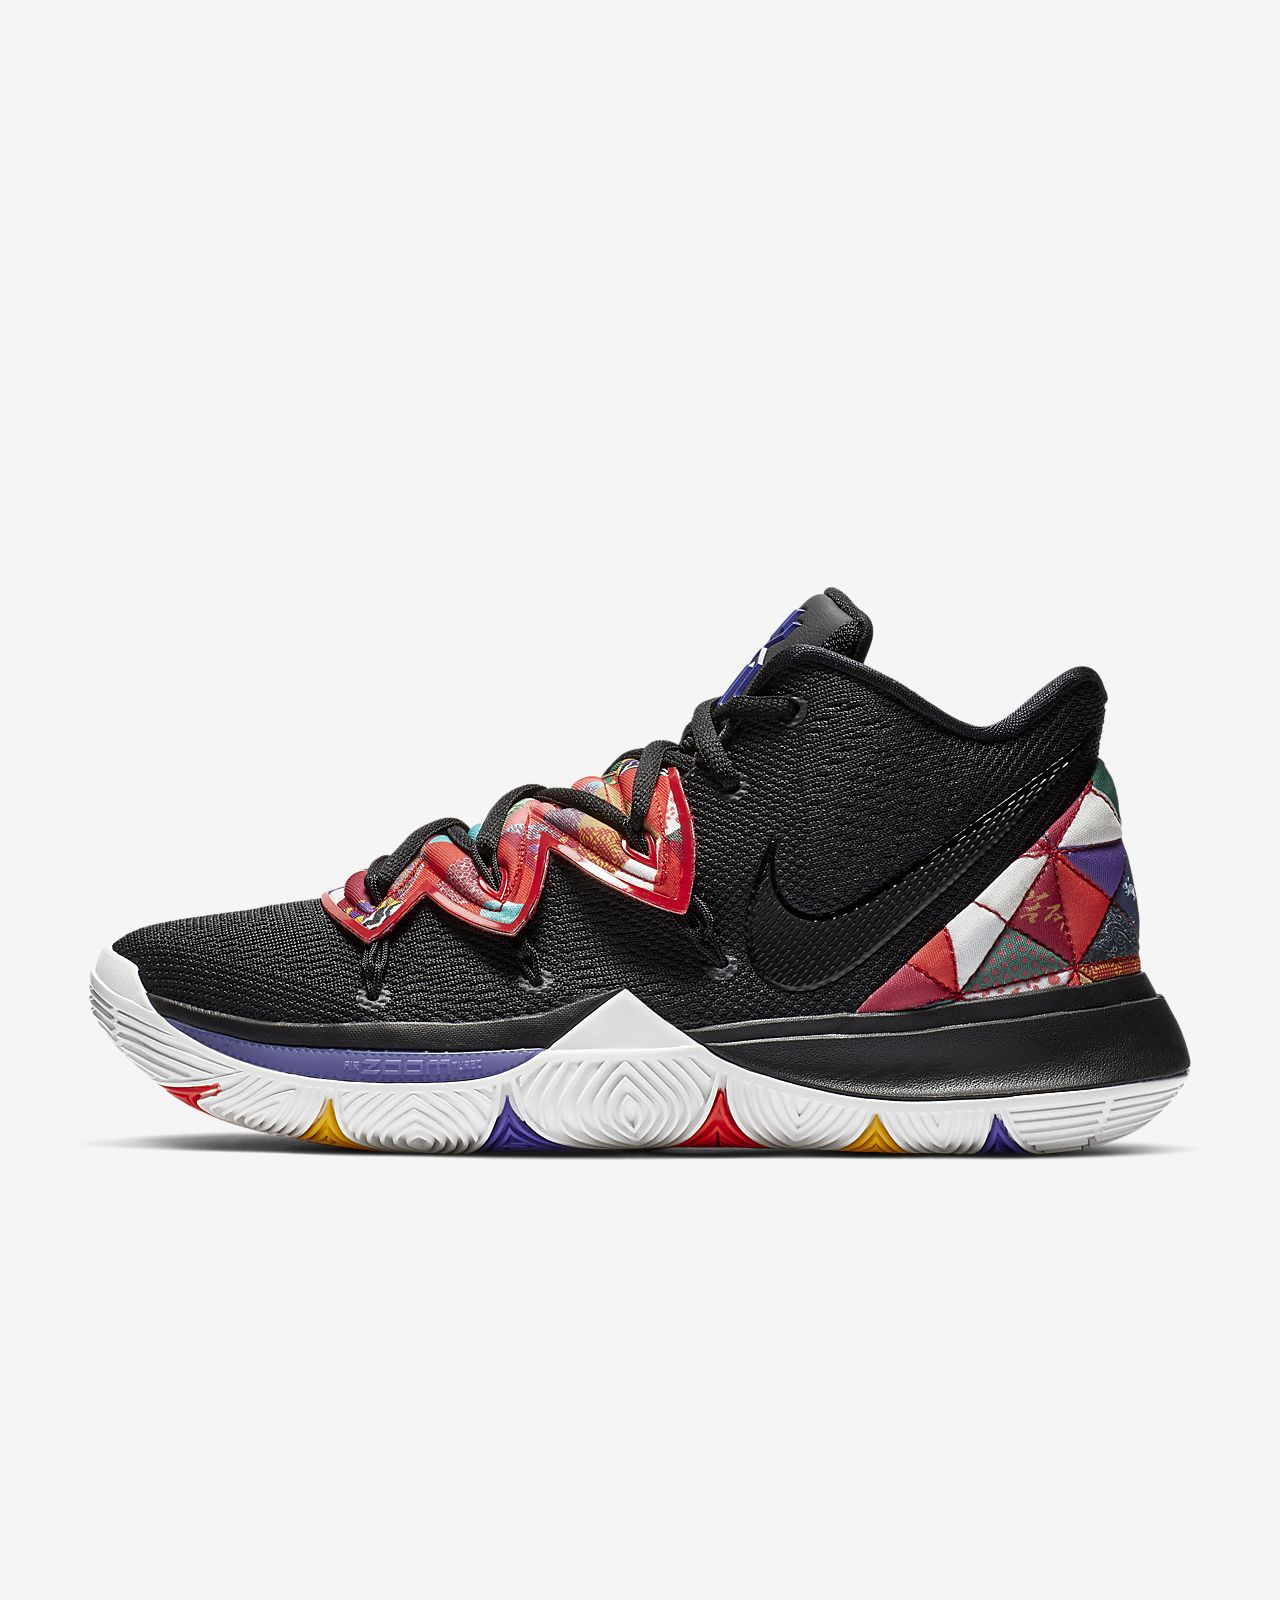 Kyrie 5 CNY Basketball Shoe